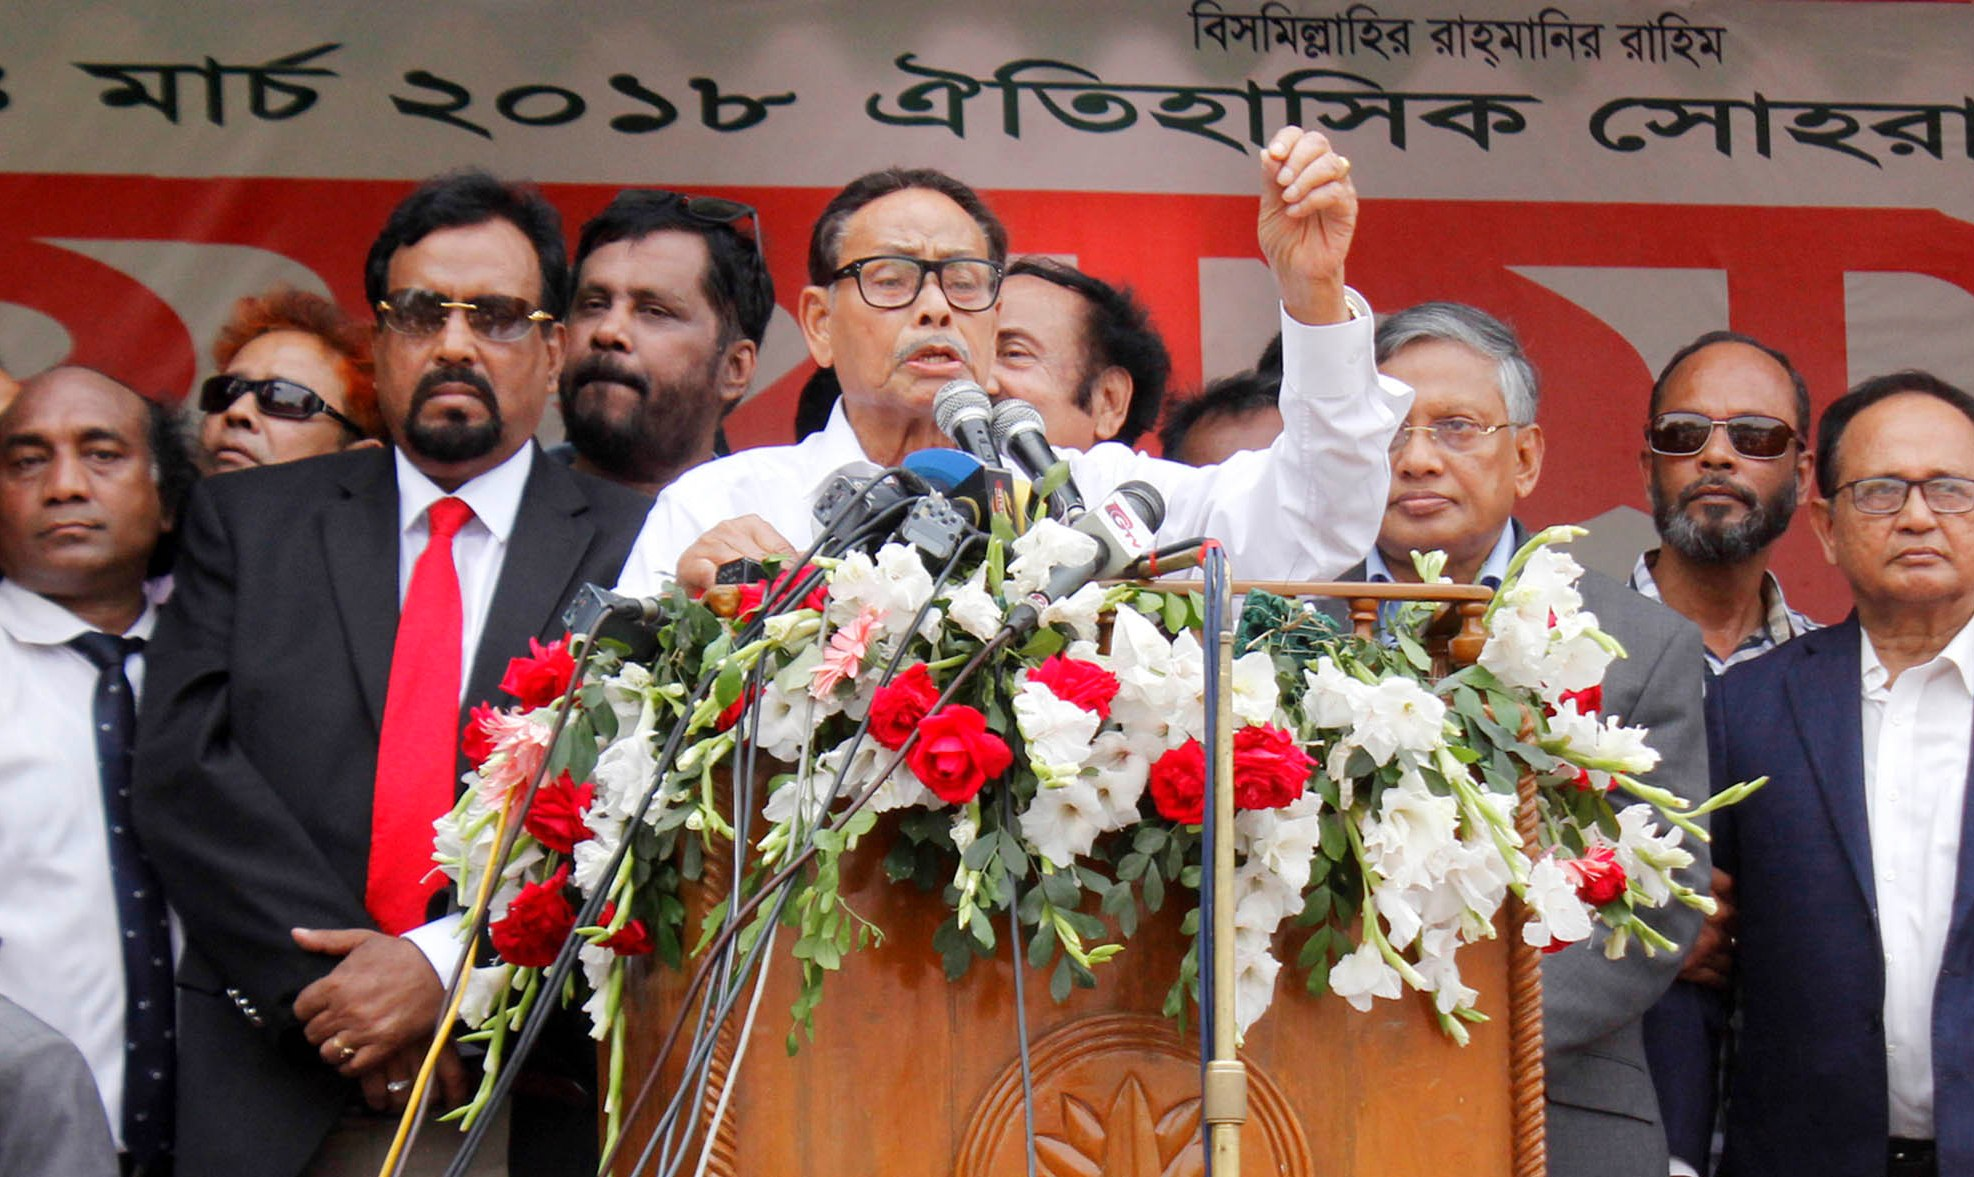 Ershad urges students to go back to classroom